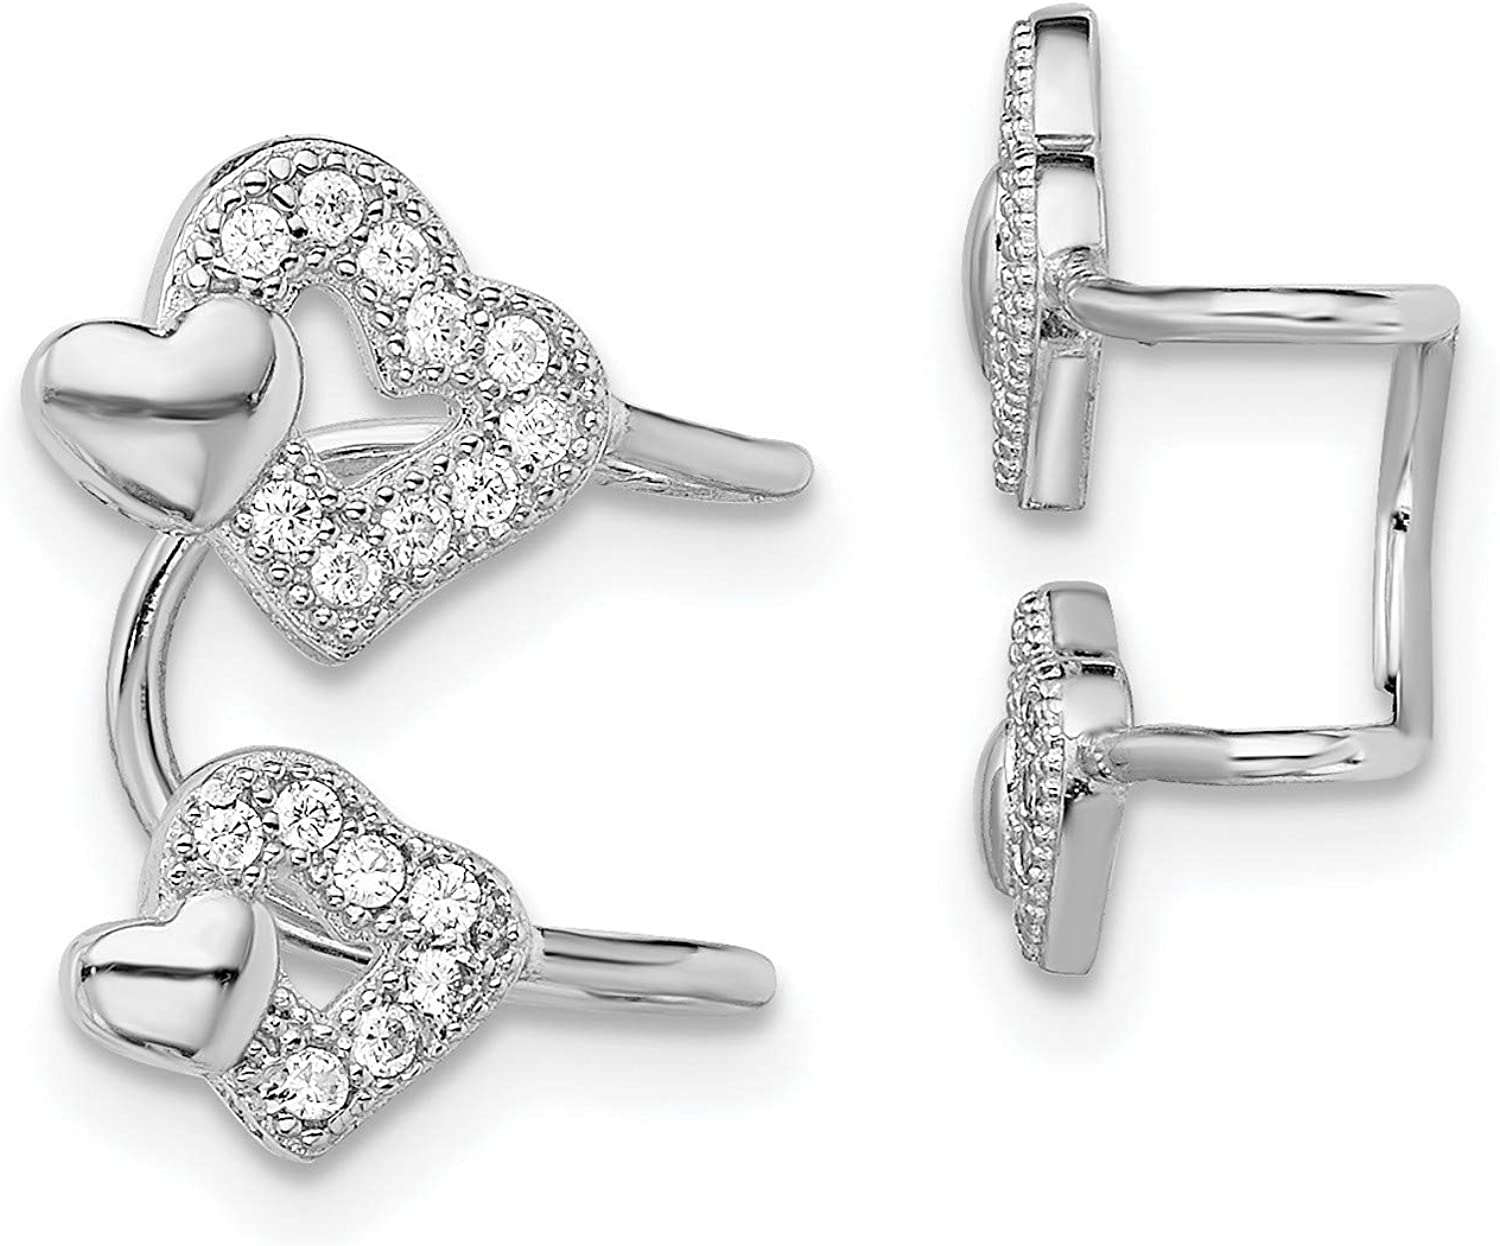 Sterling Silver CZ Double Max 53% OFF Heart mm New Shipping Free Earrings 15x10 Left Cuff